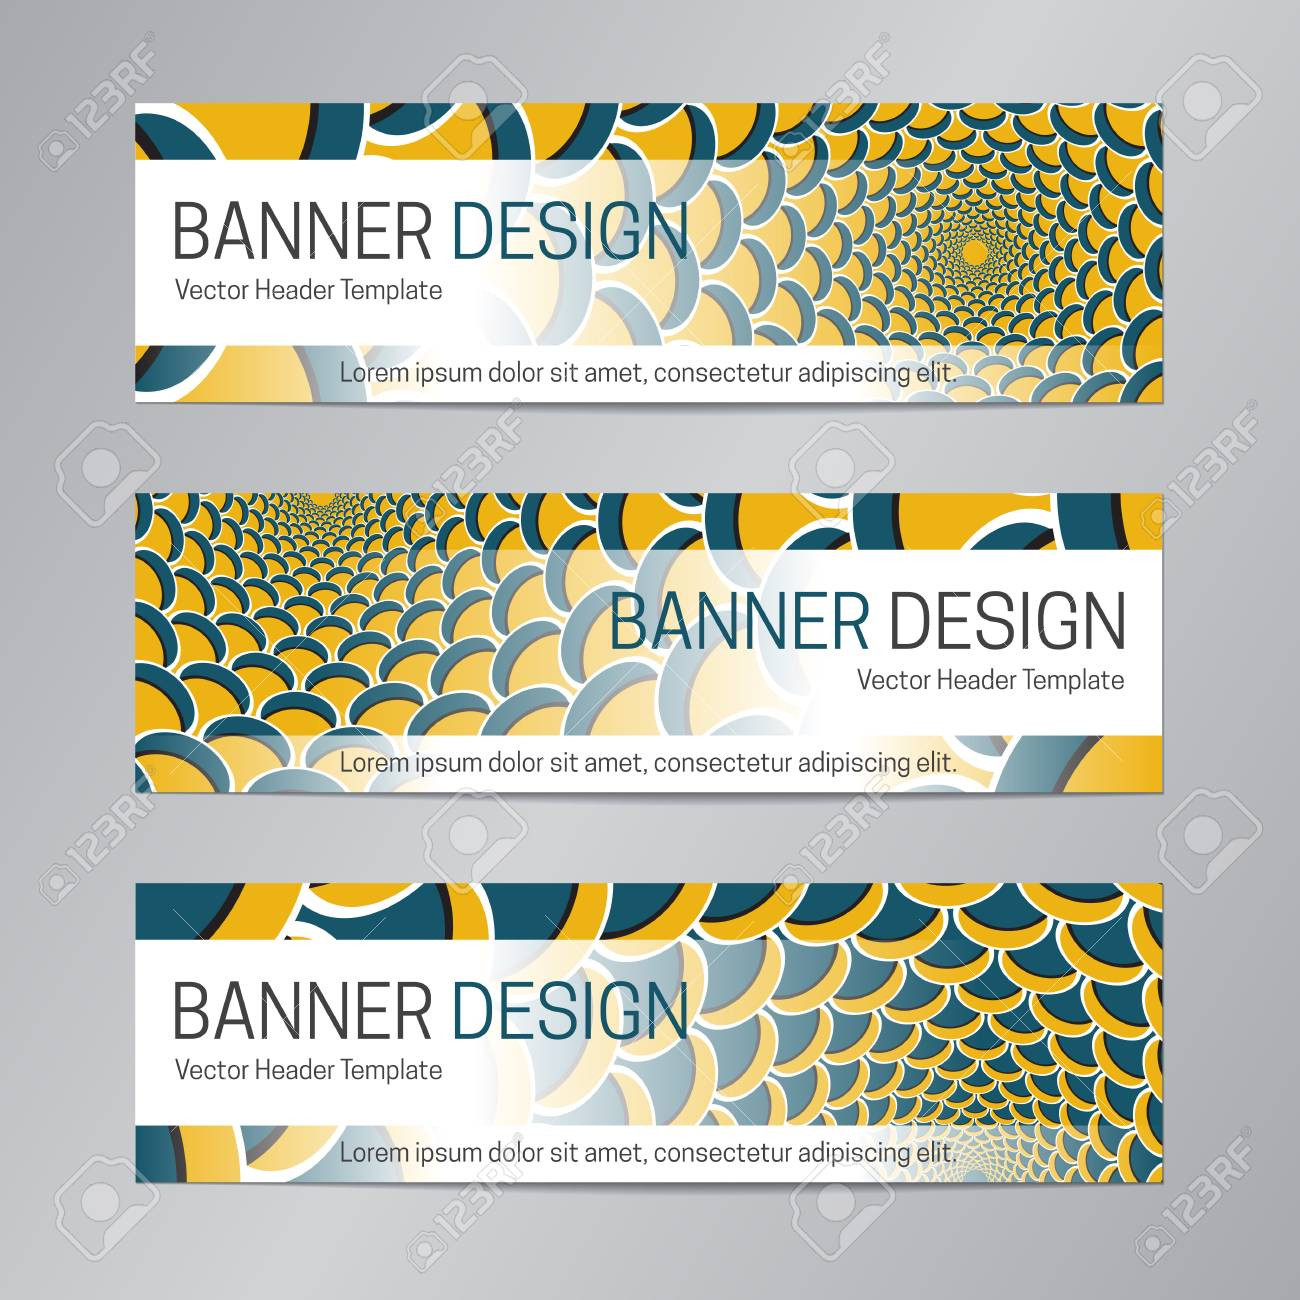 blue yellow website header design abstract banner template royalty